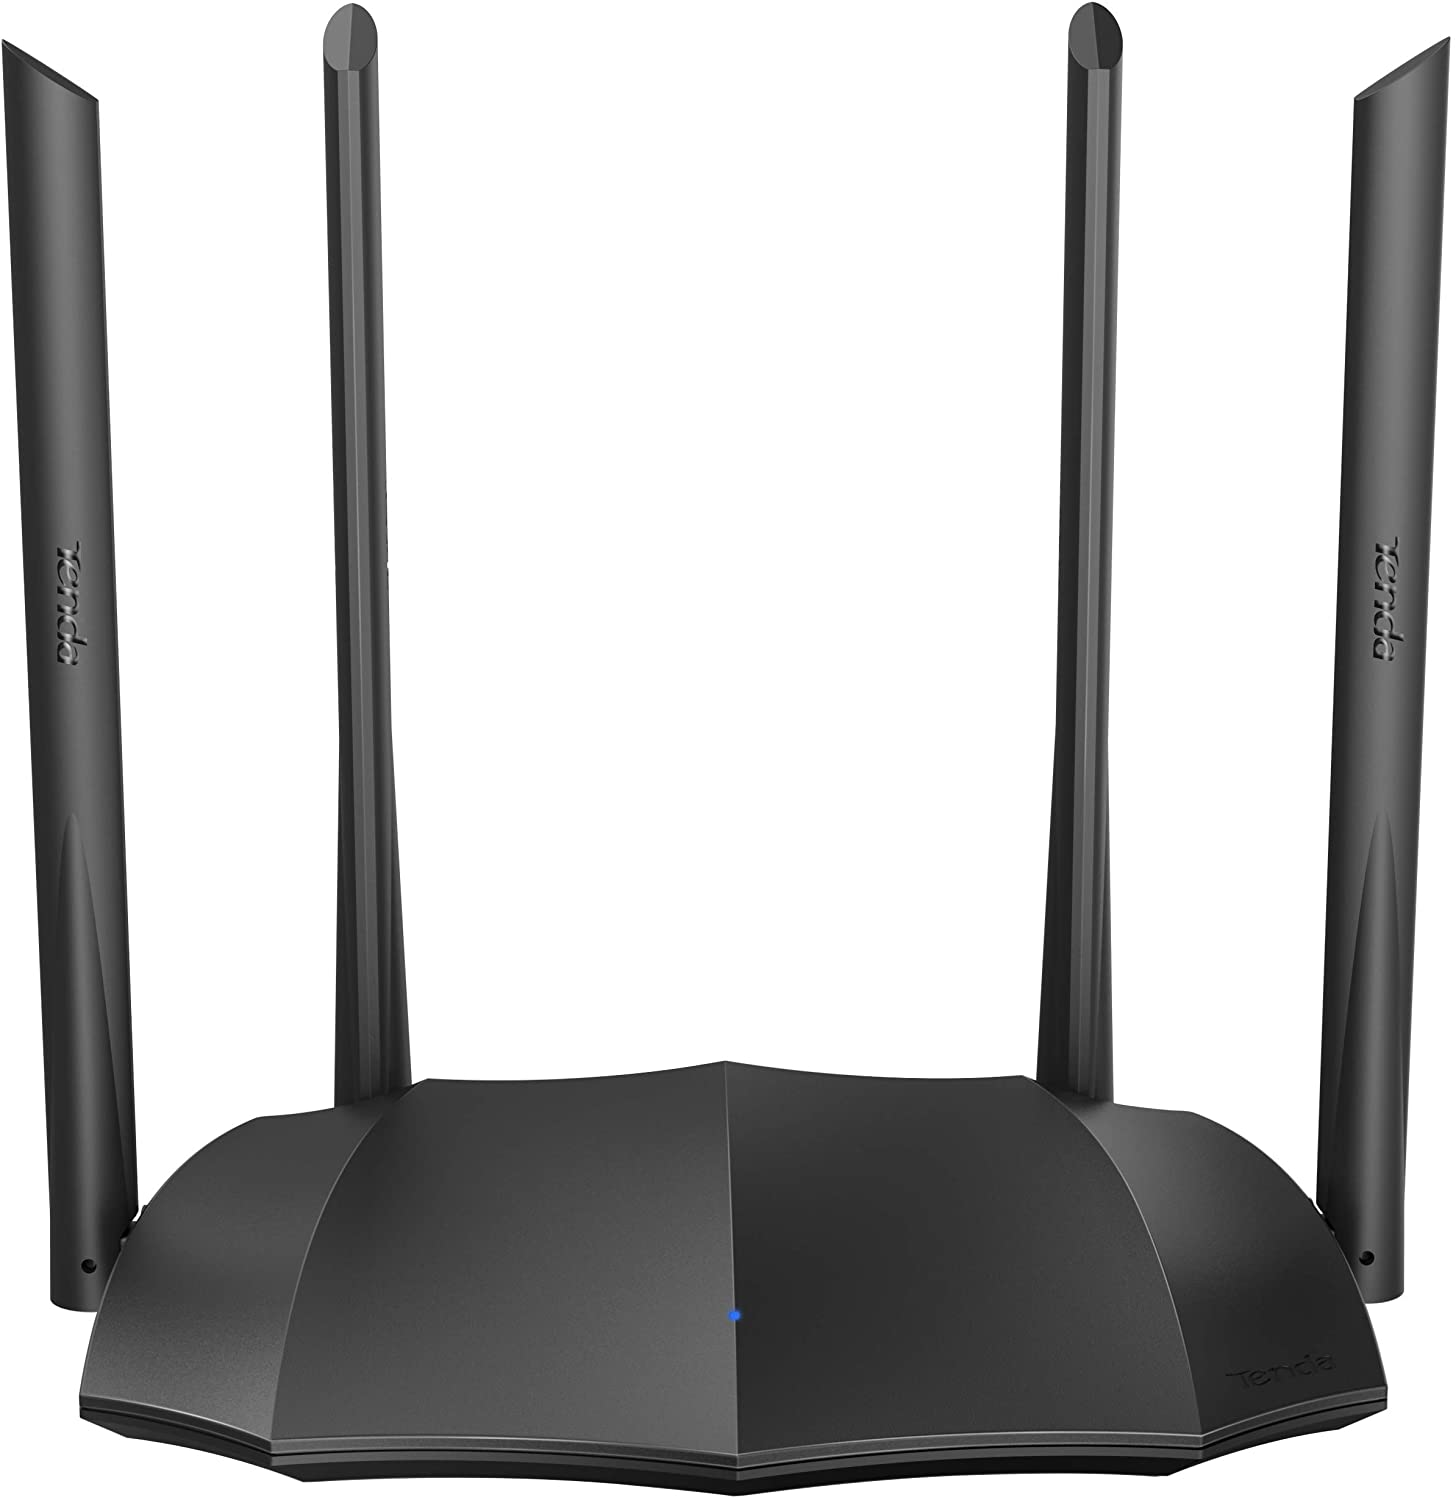 Tenda AC1200 Dual Band Gigabit Smart WiFi Router, 5Ghz High Speed Wireless Internet Router, MU-MIMO, Beamforming, Long Range Coverage by 4x6dBi Antenna, IPv6, Guest WiFi, AP Mode - 2020 New Upgraded…